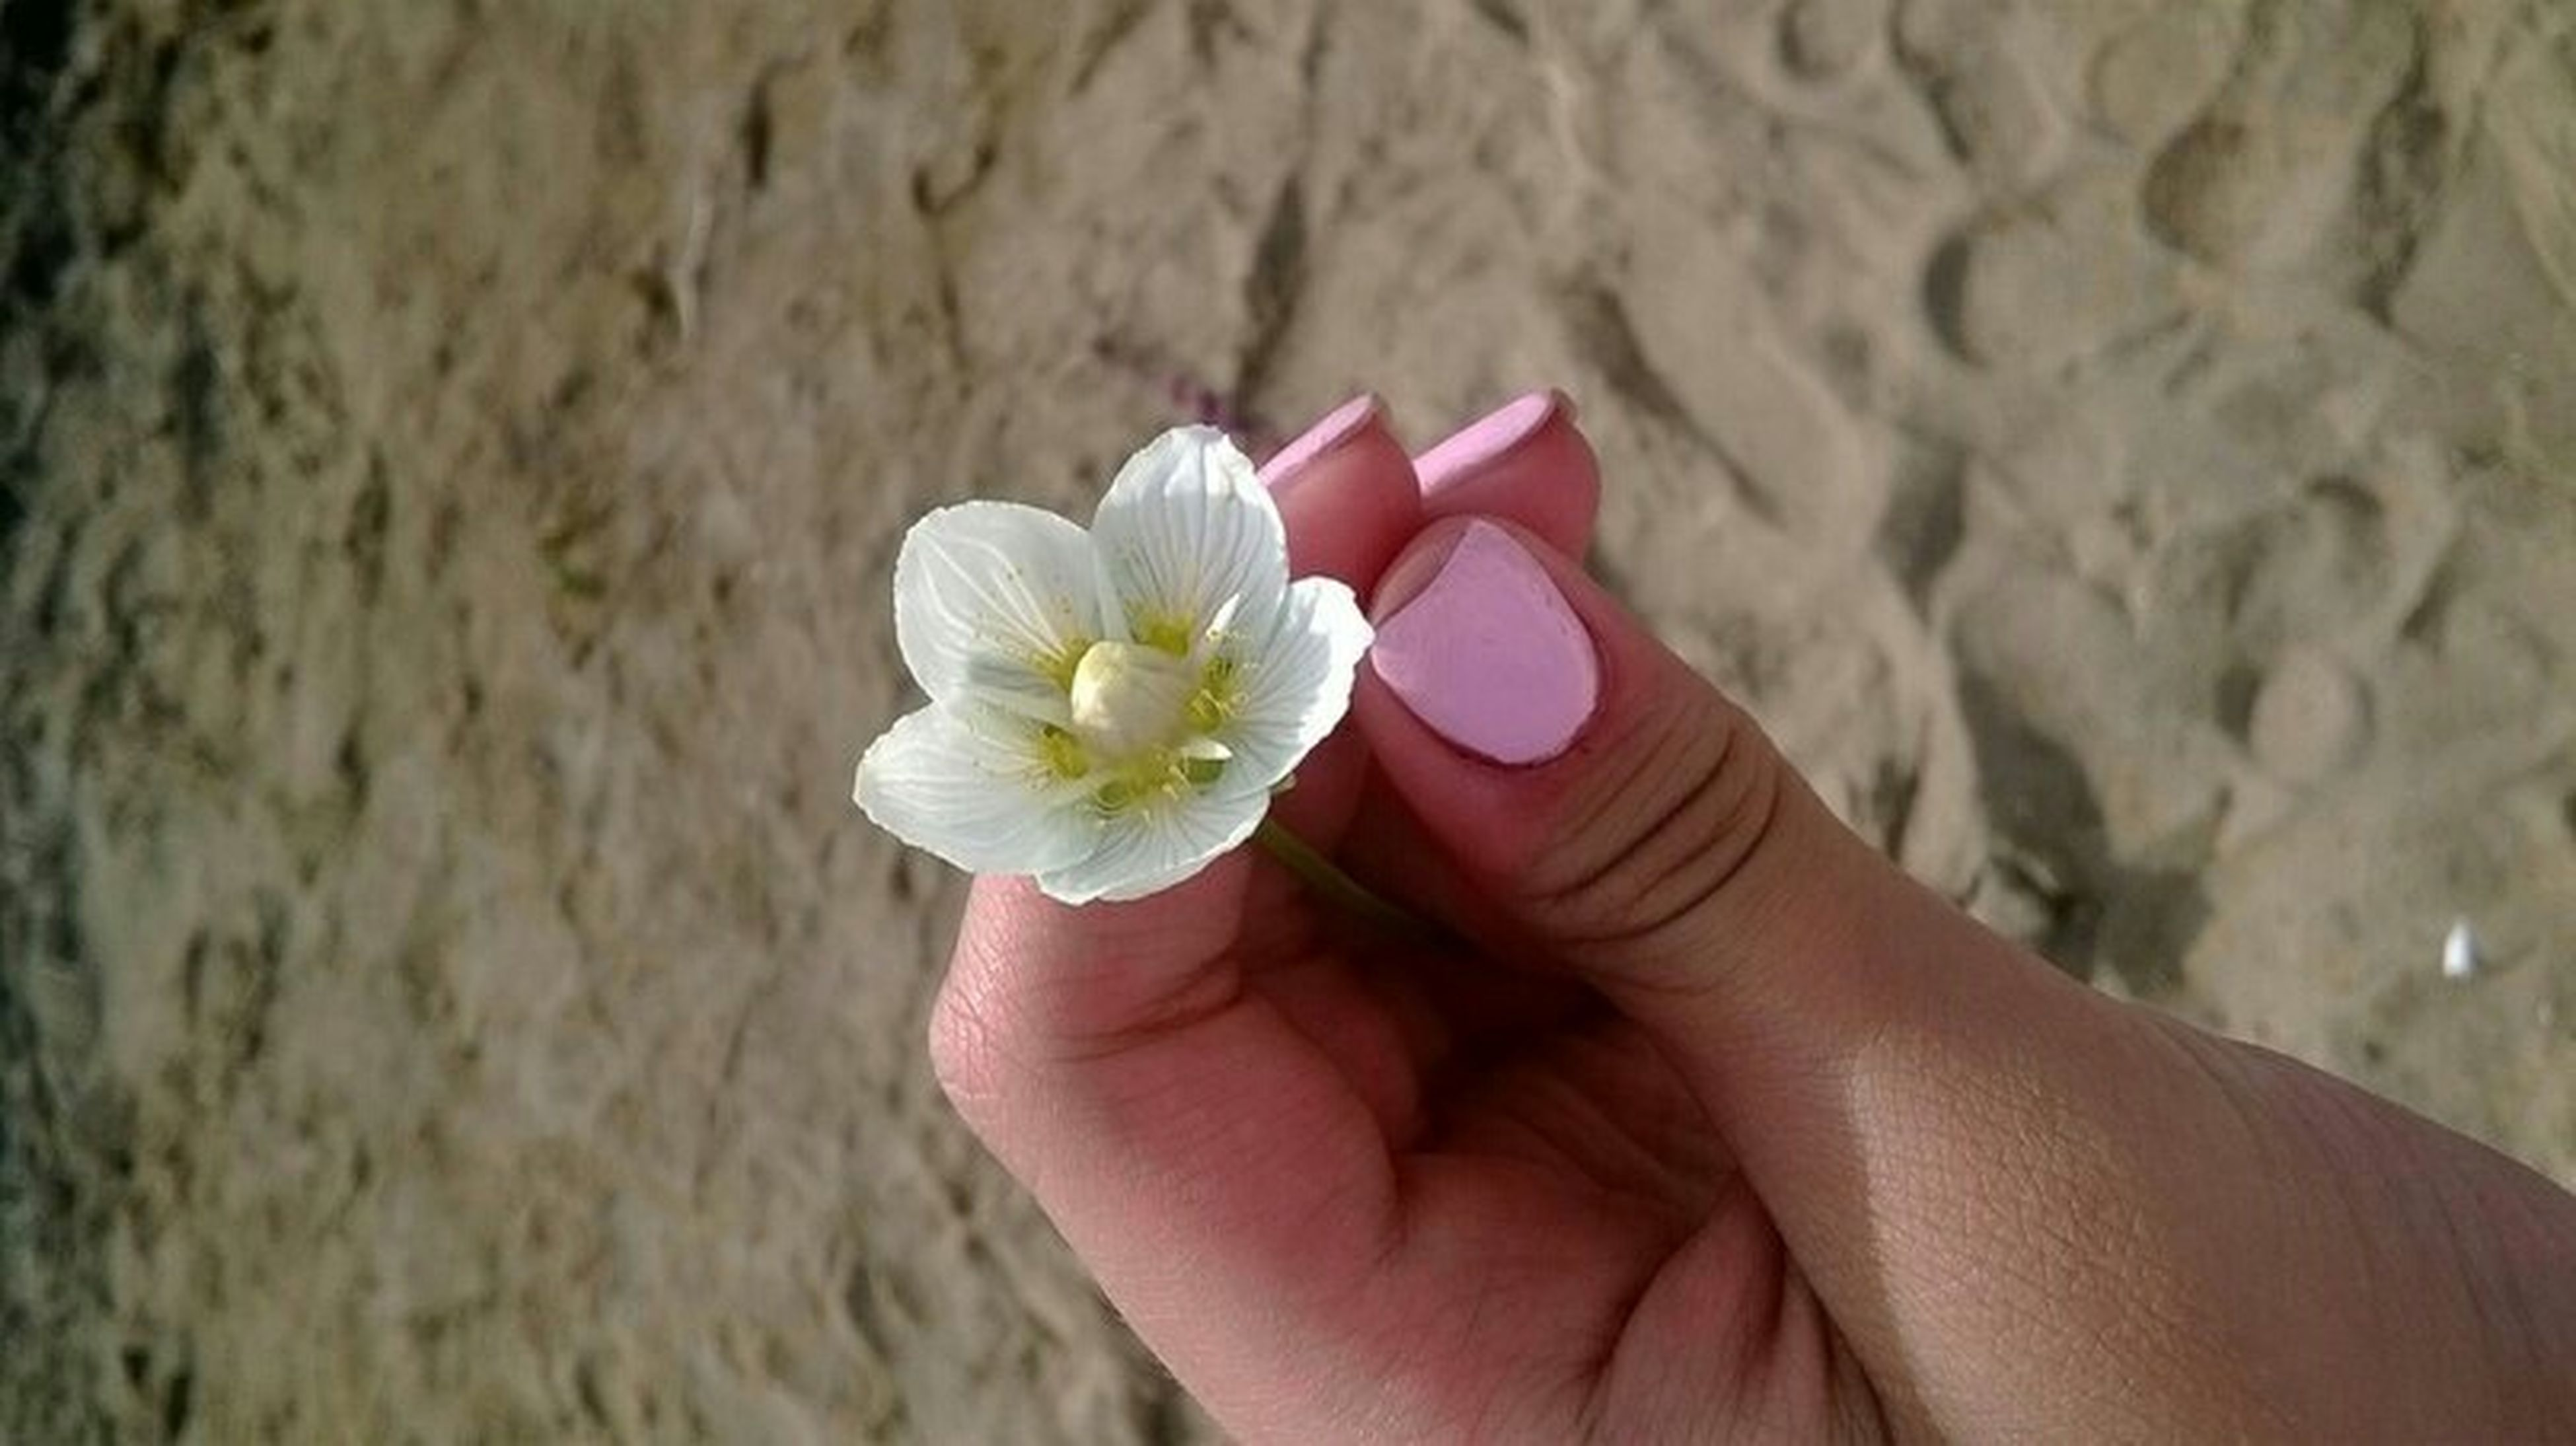 person, holding, part of, flower, human finger, personal perspective, cropped, fragility, close-up, focus on foreground, petal, freshness, unrecognizable person, lifestyles, flower head, leisure activity